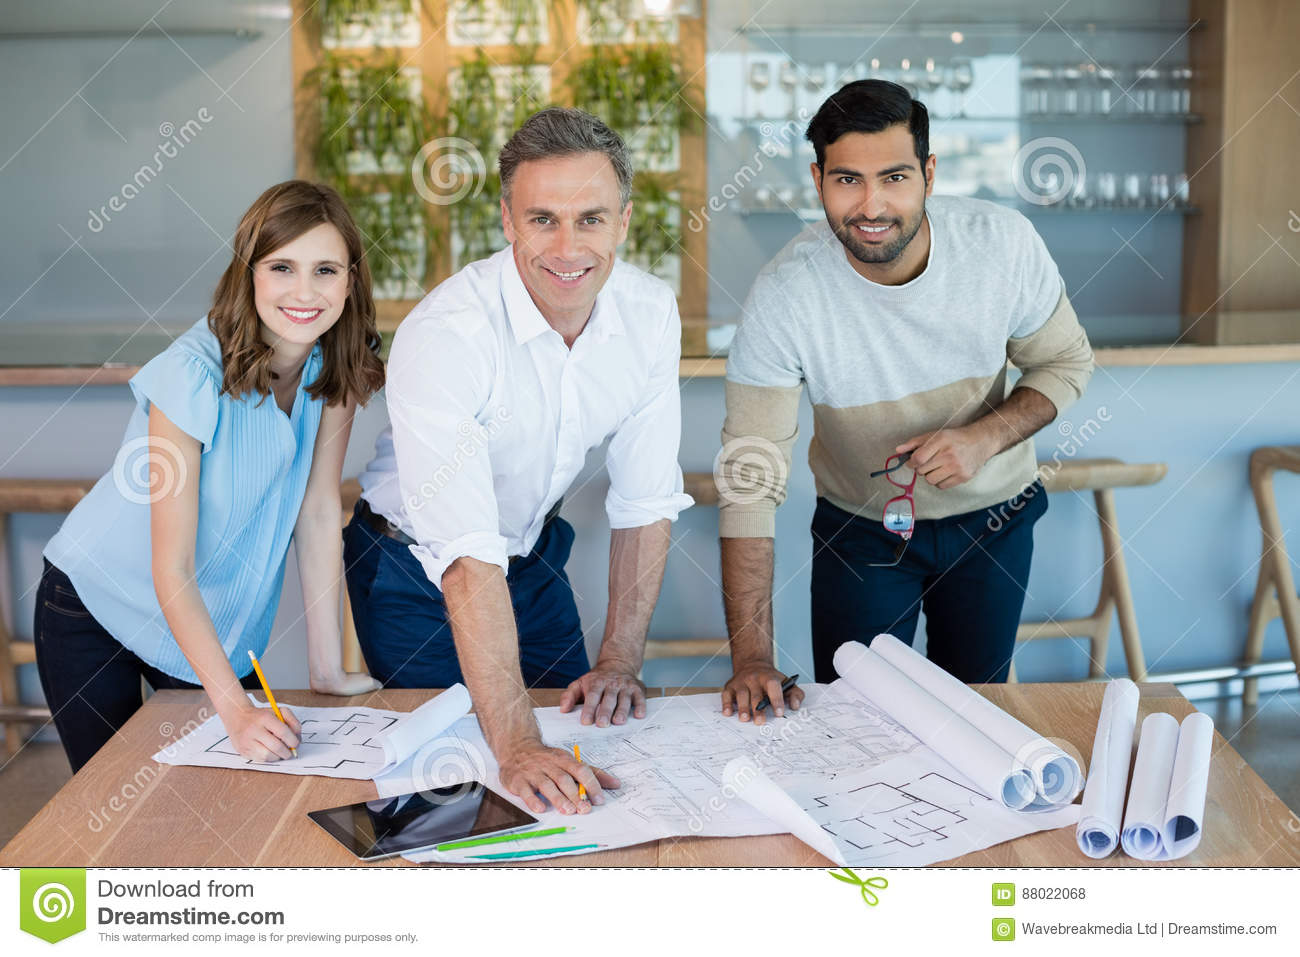 Smiling architects working over blueprint in conference room